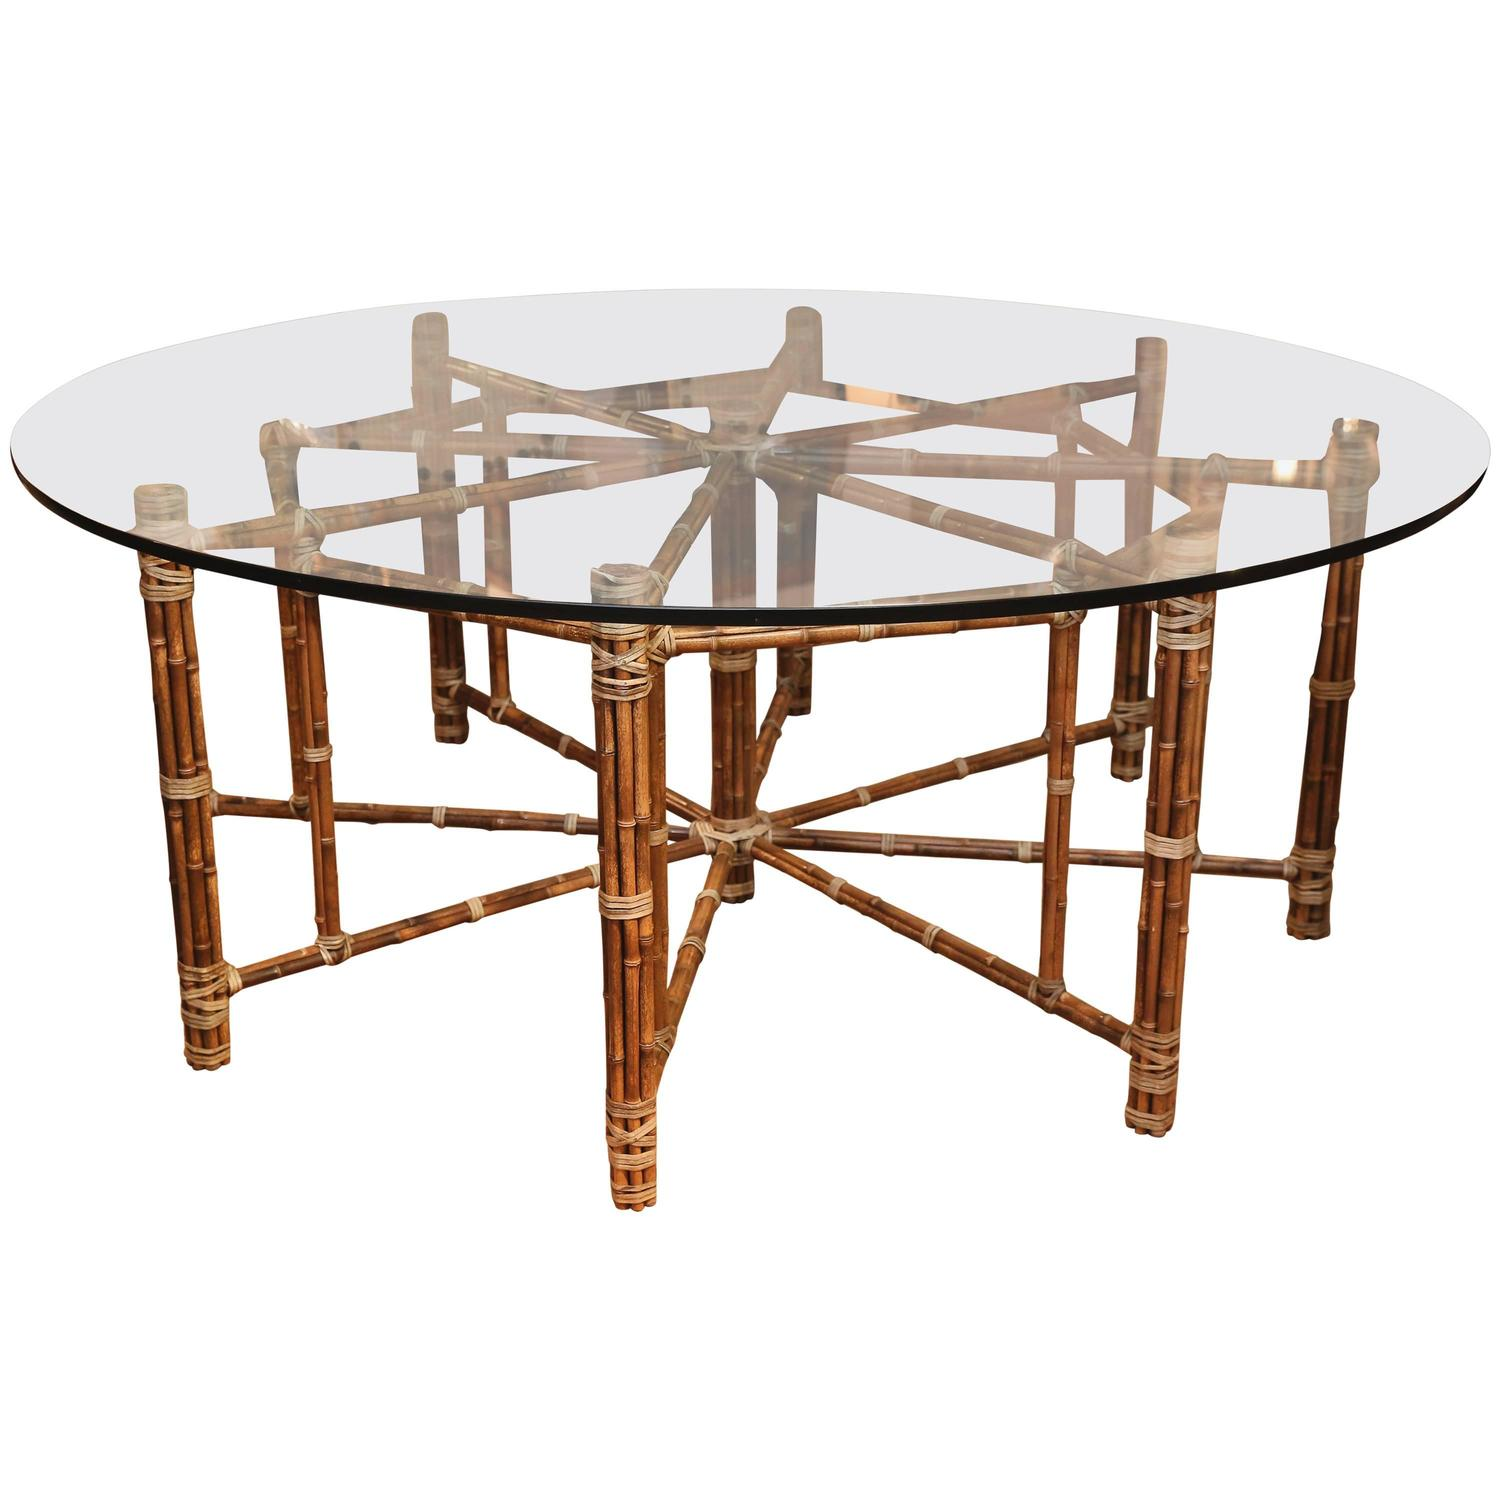 philippine dining room tables 9 for sale at 1stdibs